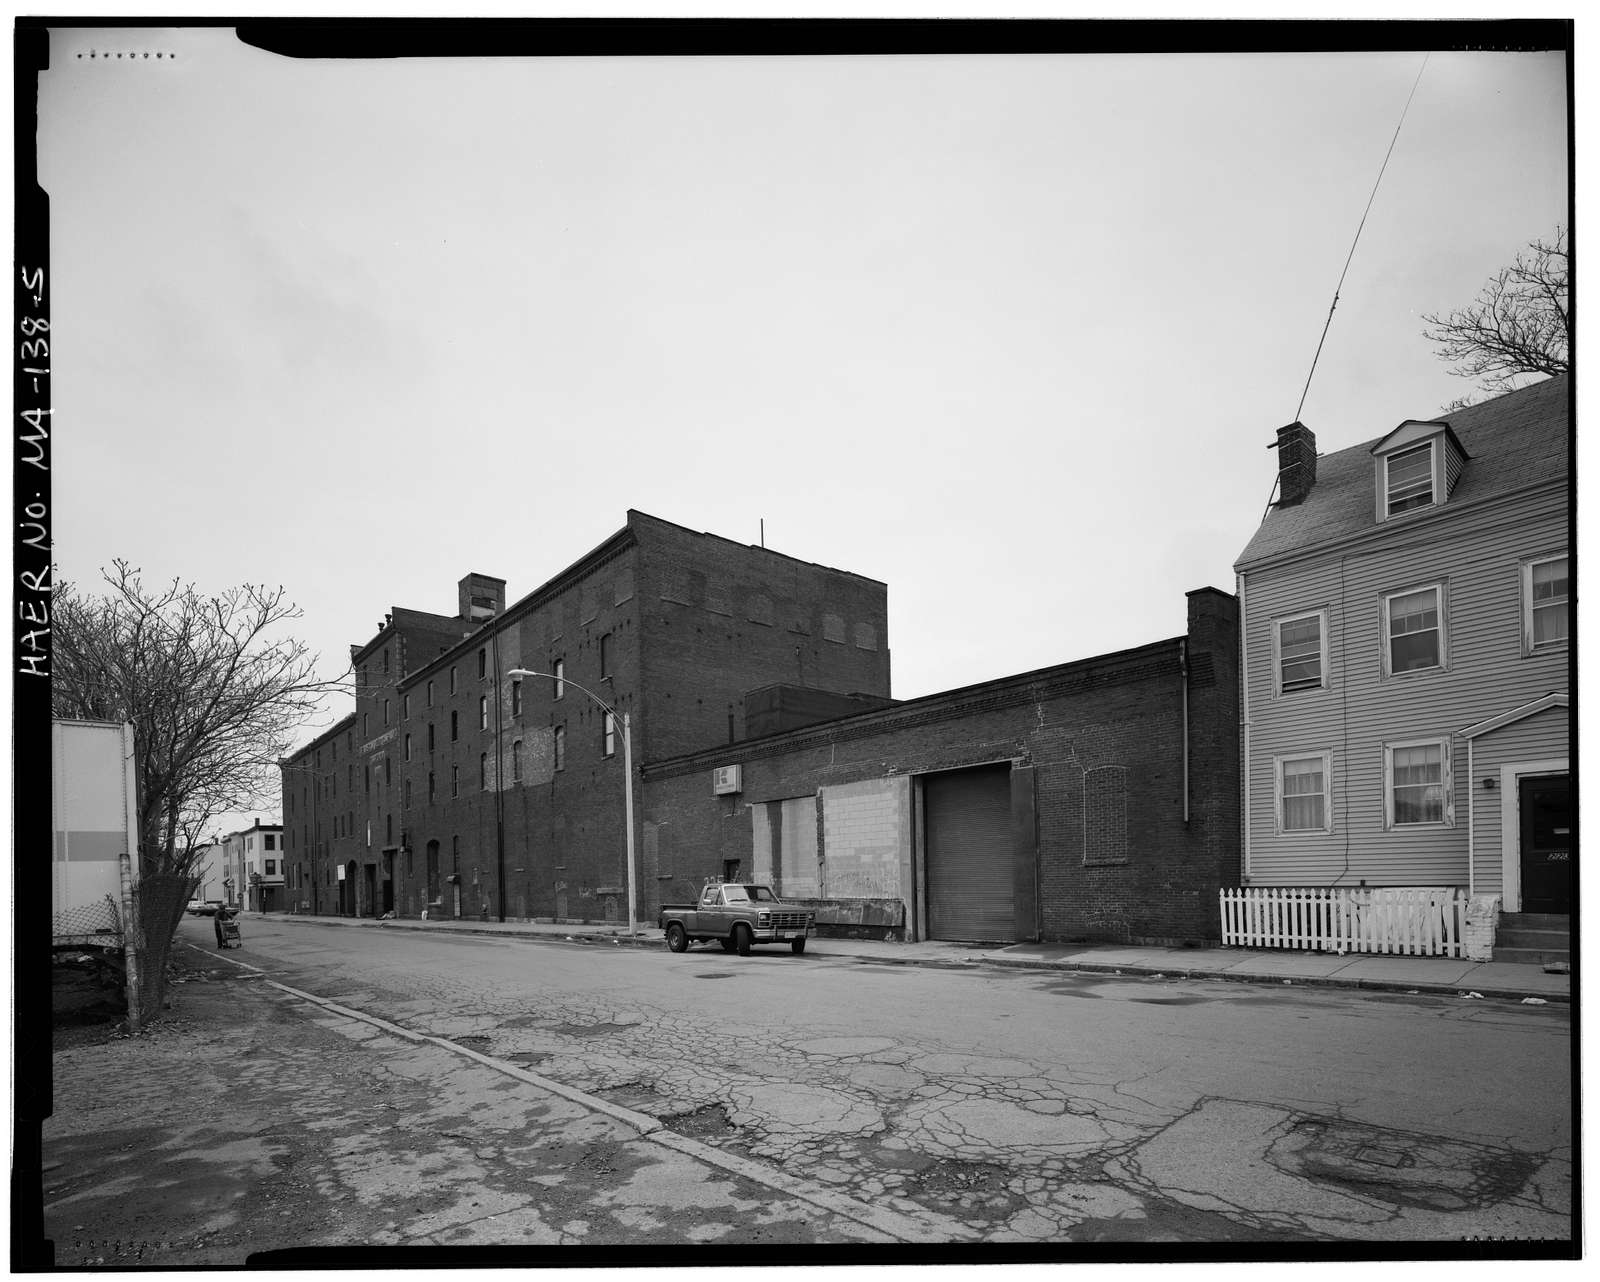 Boston Beer Company, 225-249 West Second Street, South Boston, Suffolk County, MA